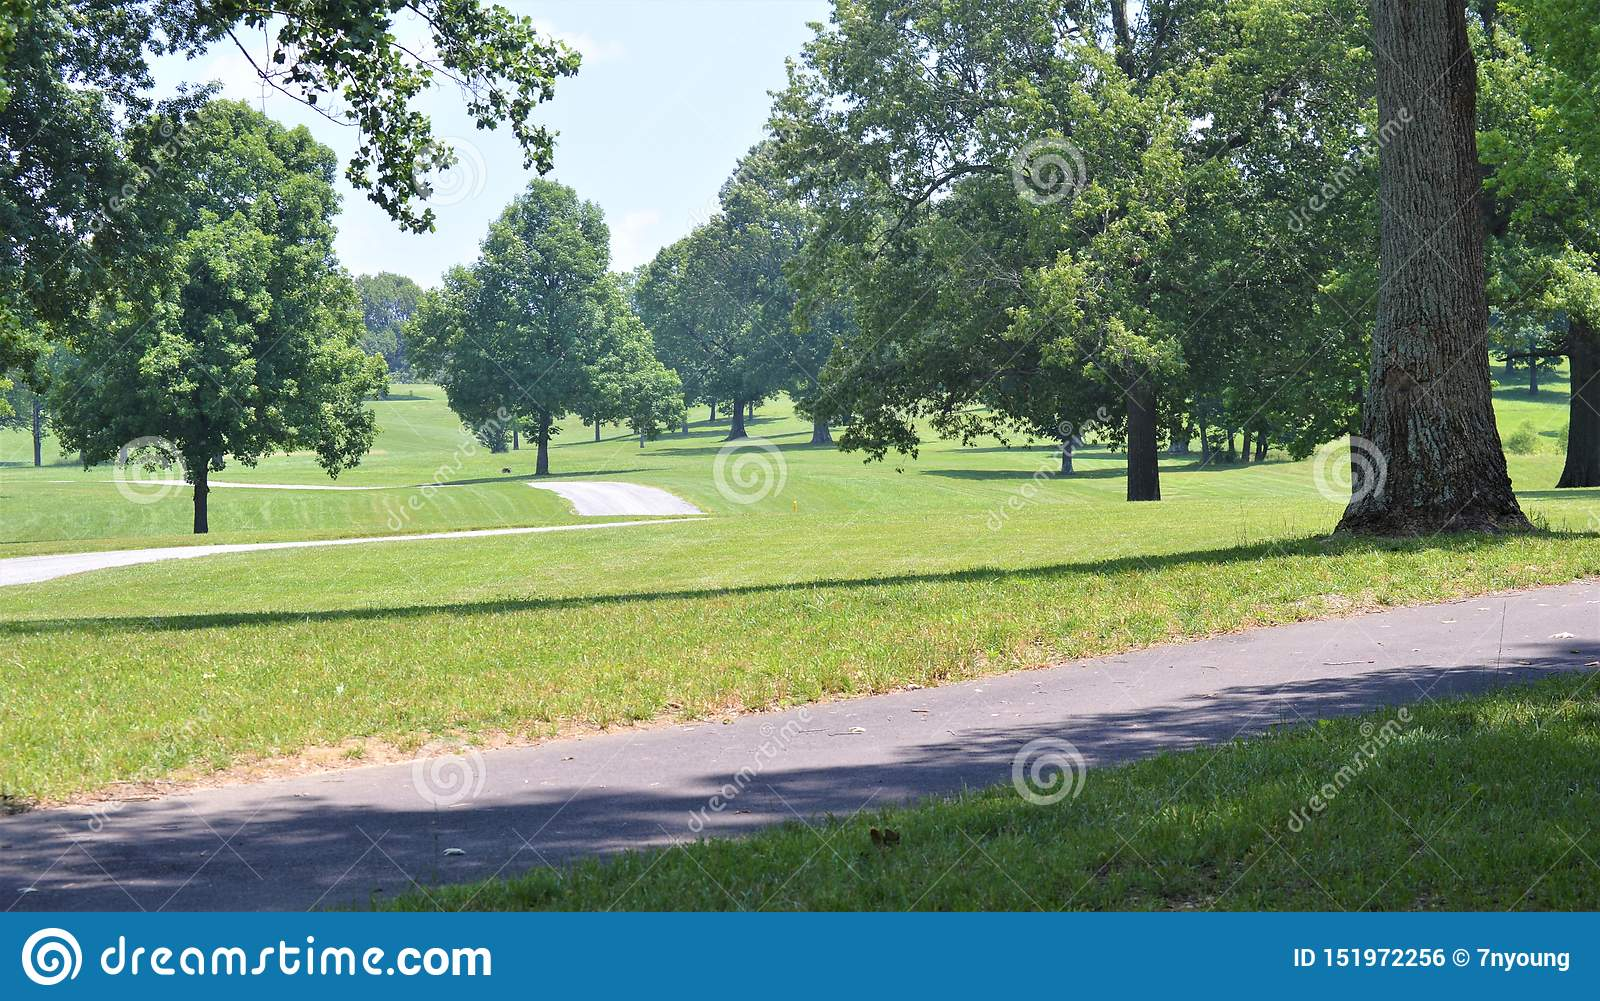 Multiple Paved Paths Passing Through a Green Field with Multiple Tall Trees